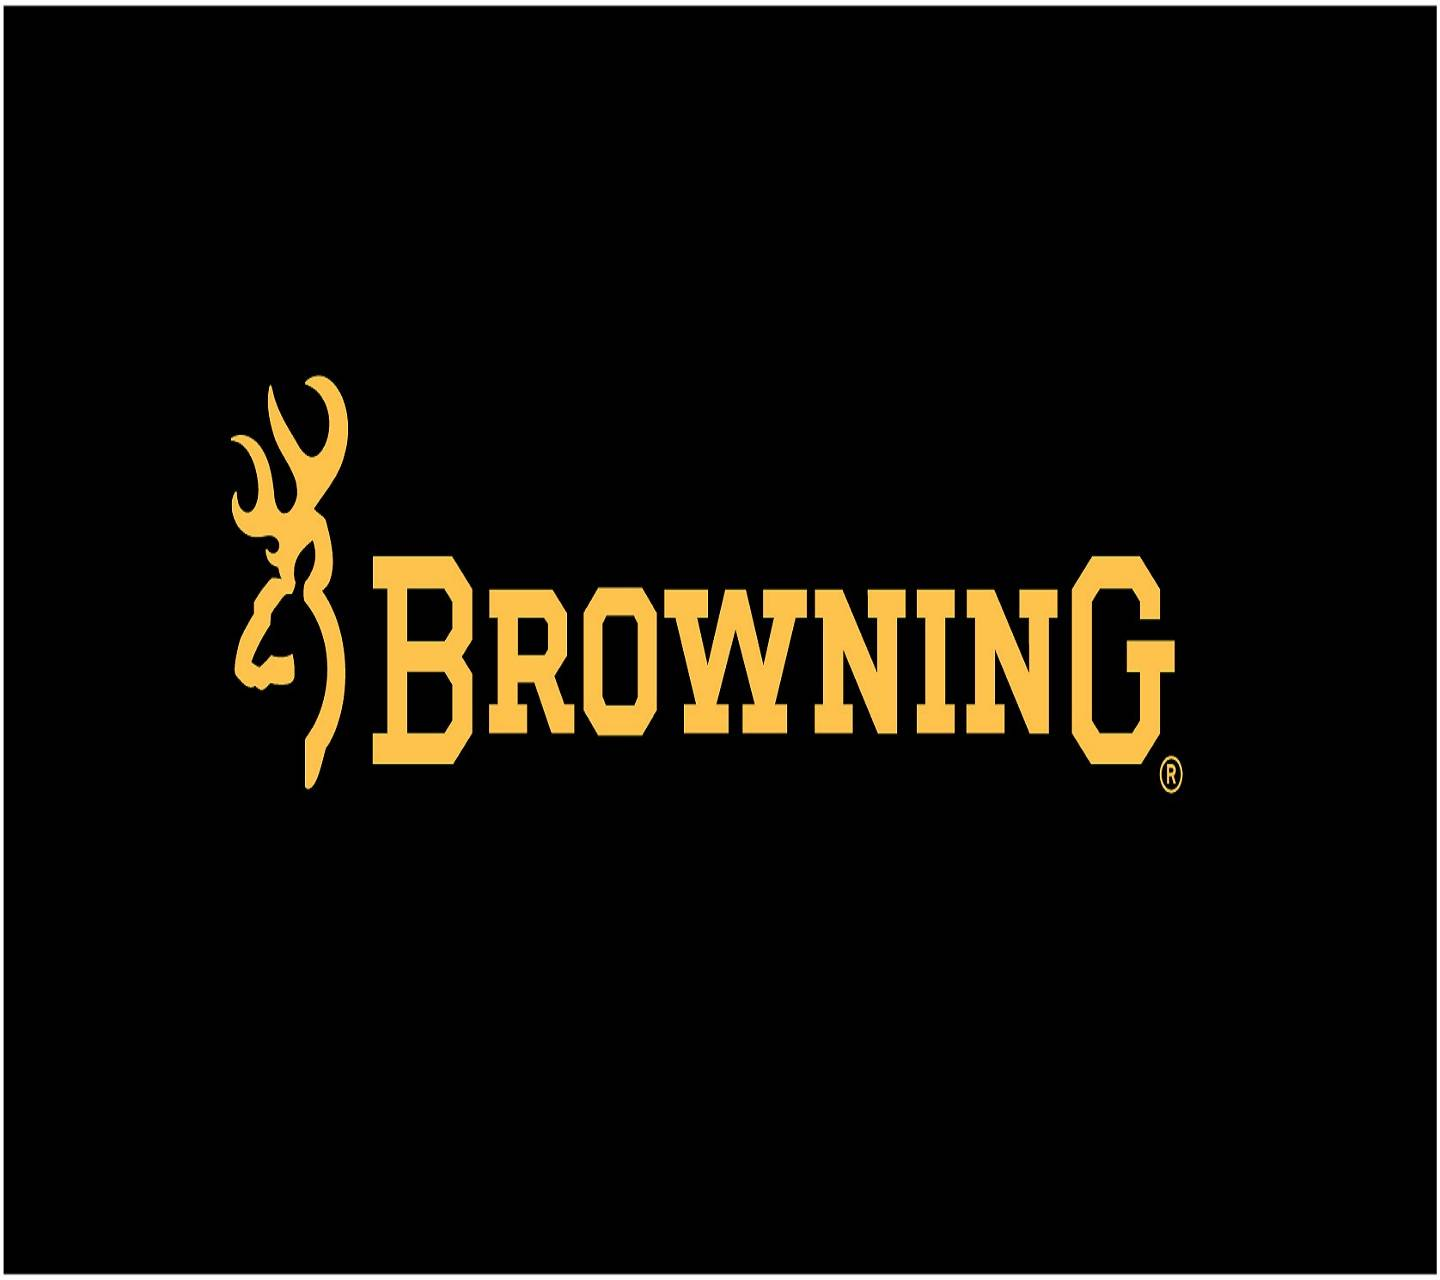 Free Browning Wallpapers For Phone